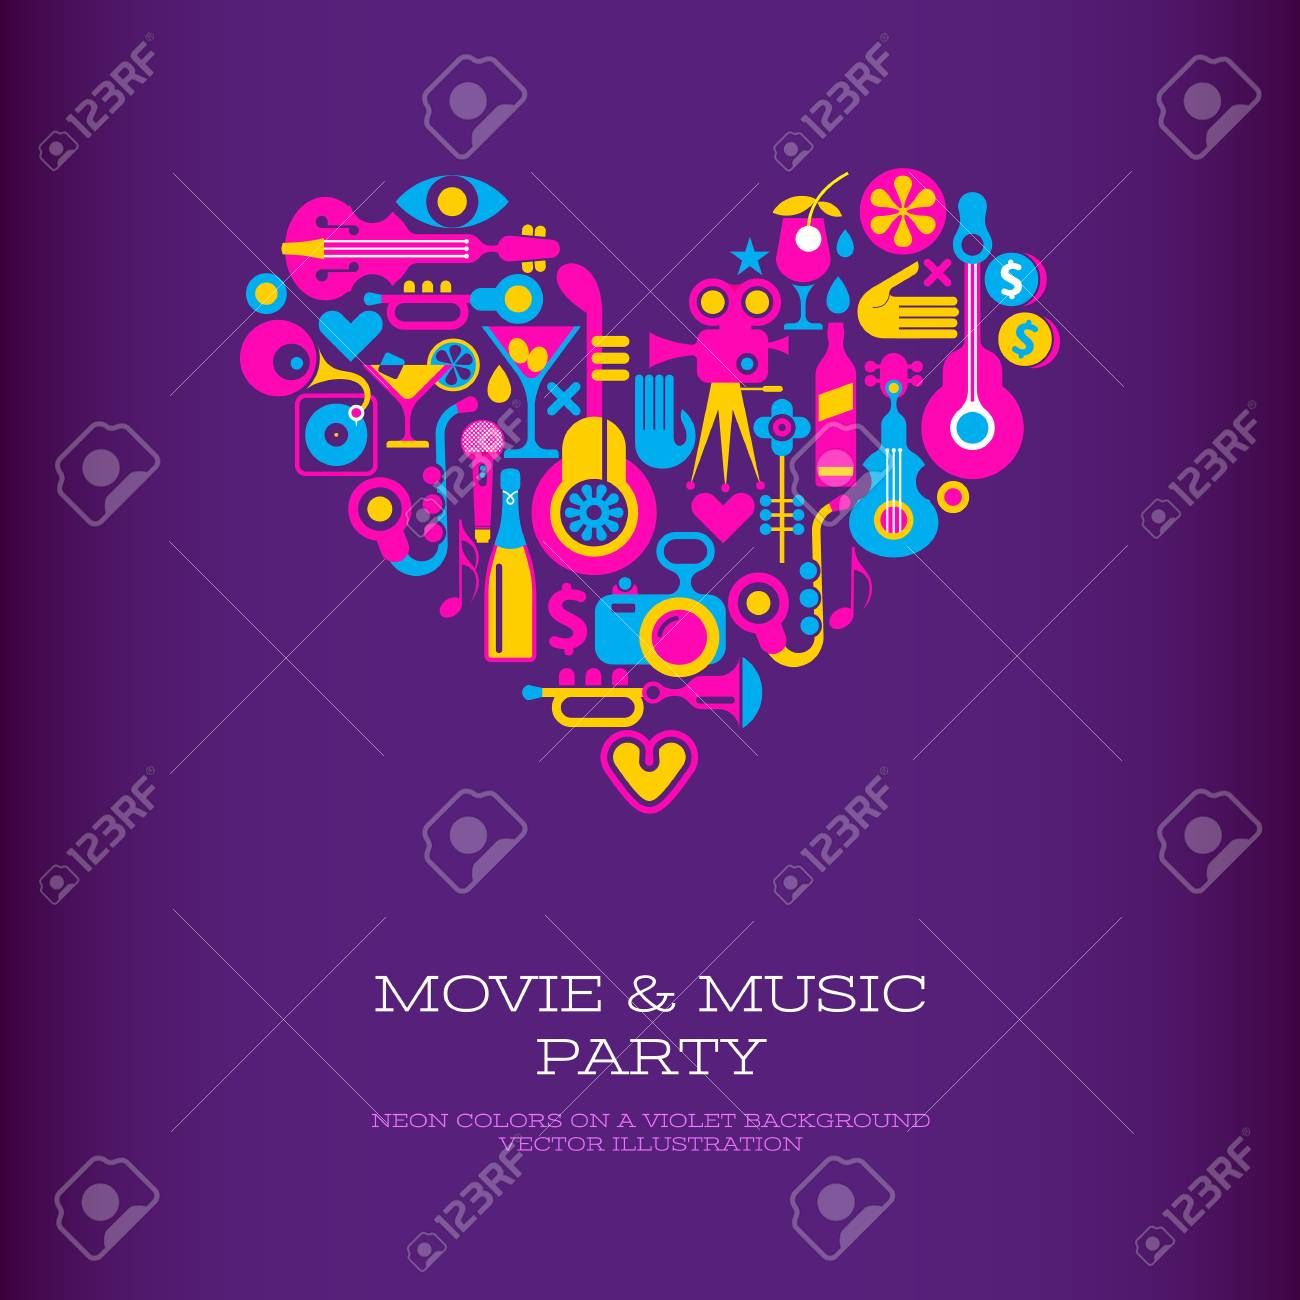 Vibrant colors on a dark violet background Movie & Music Party vector poster template. Heart shape design. - 100066495